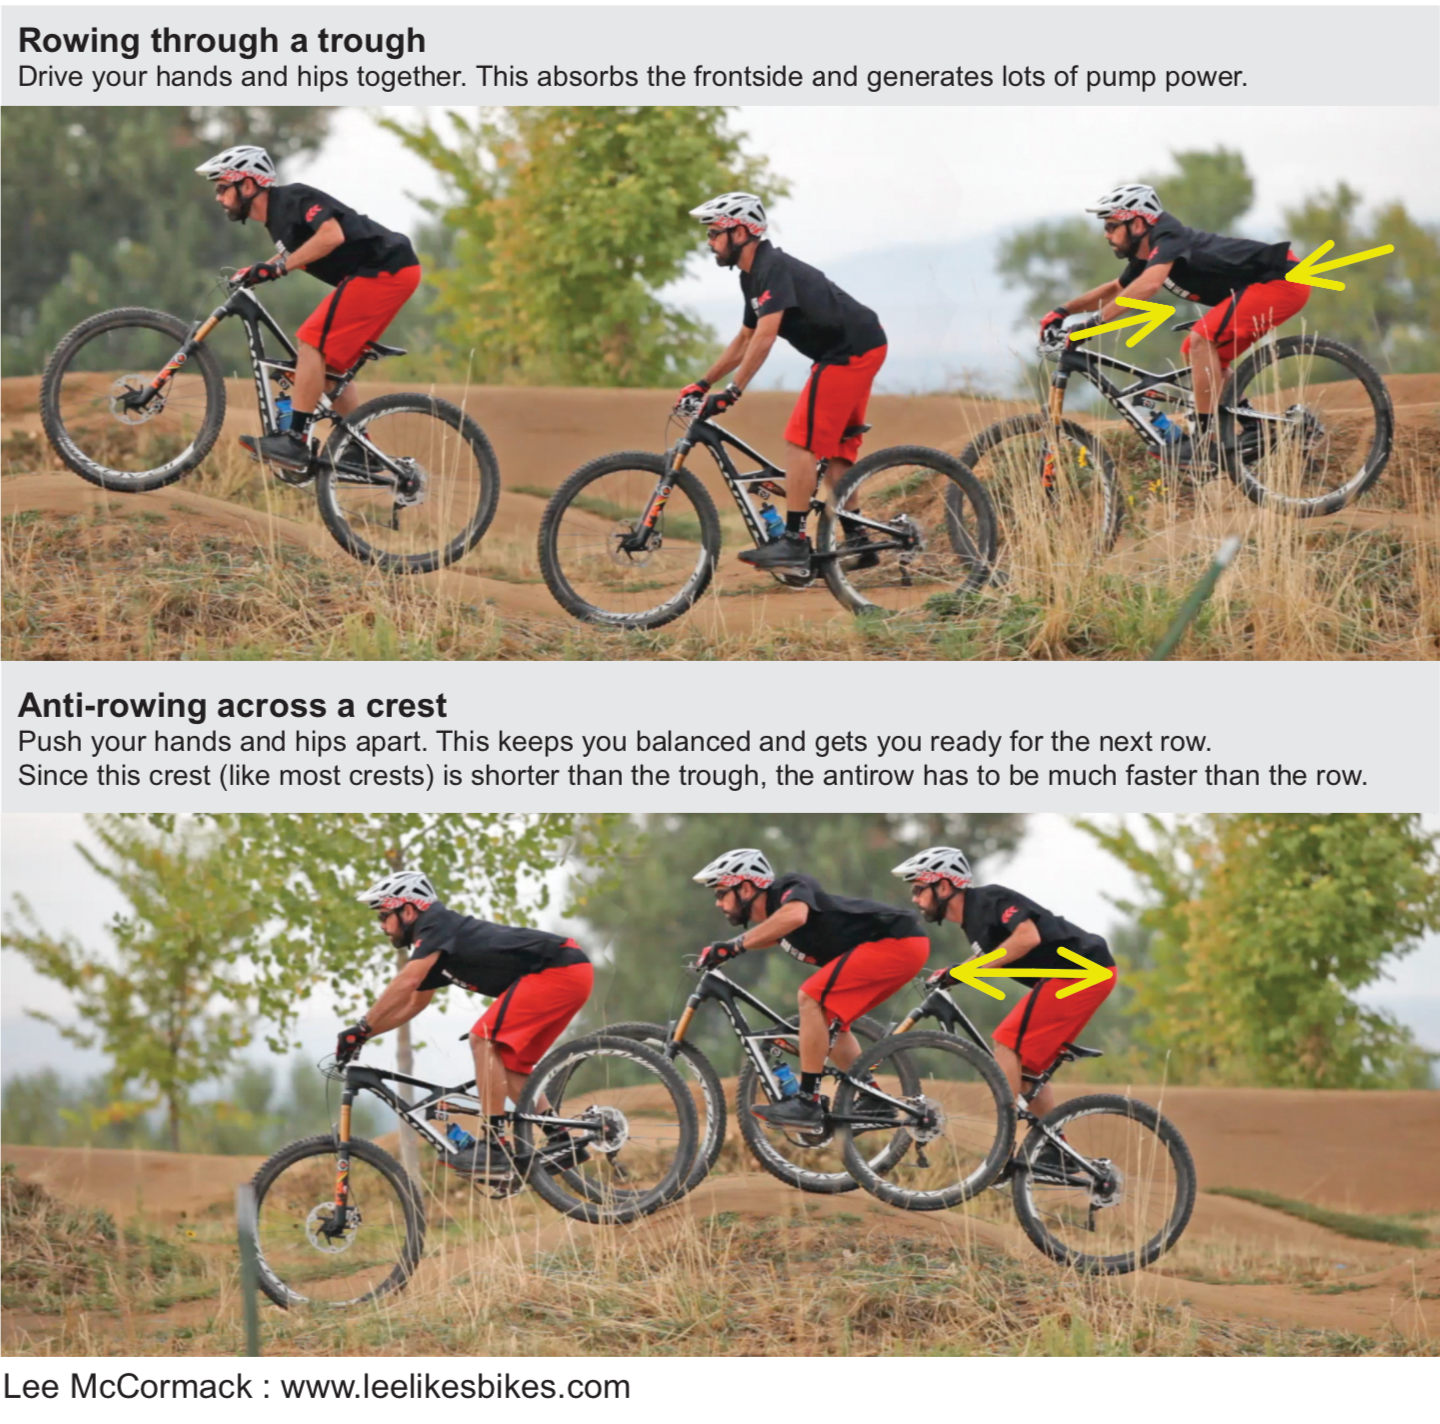 How to pump a mtb with row and anti-row